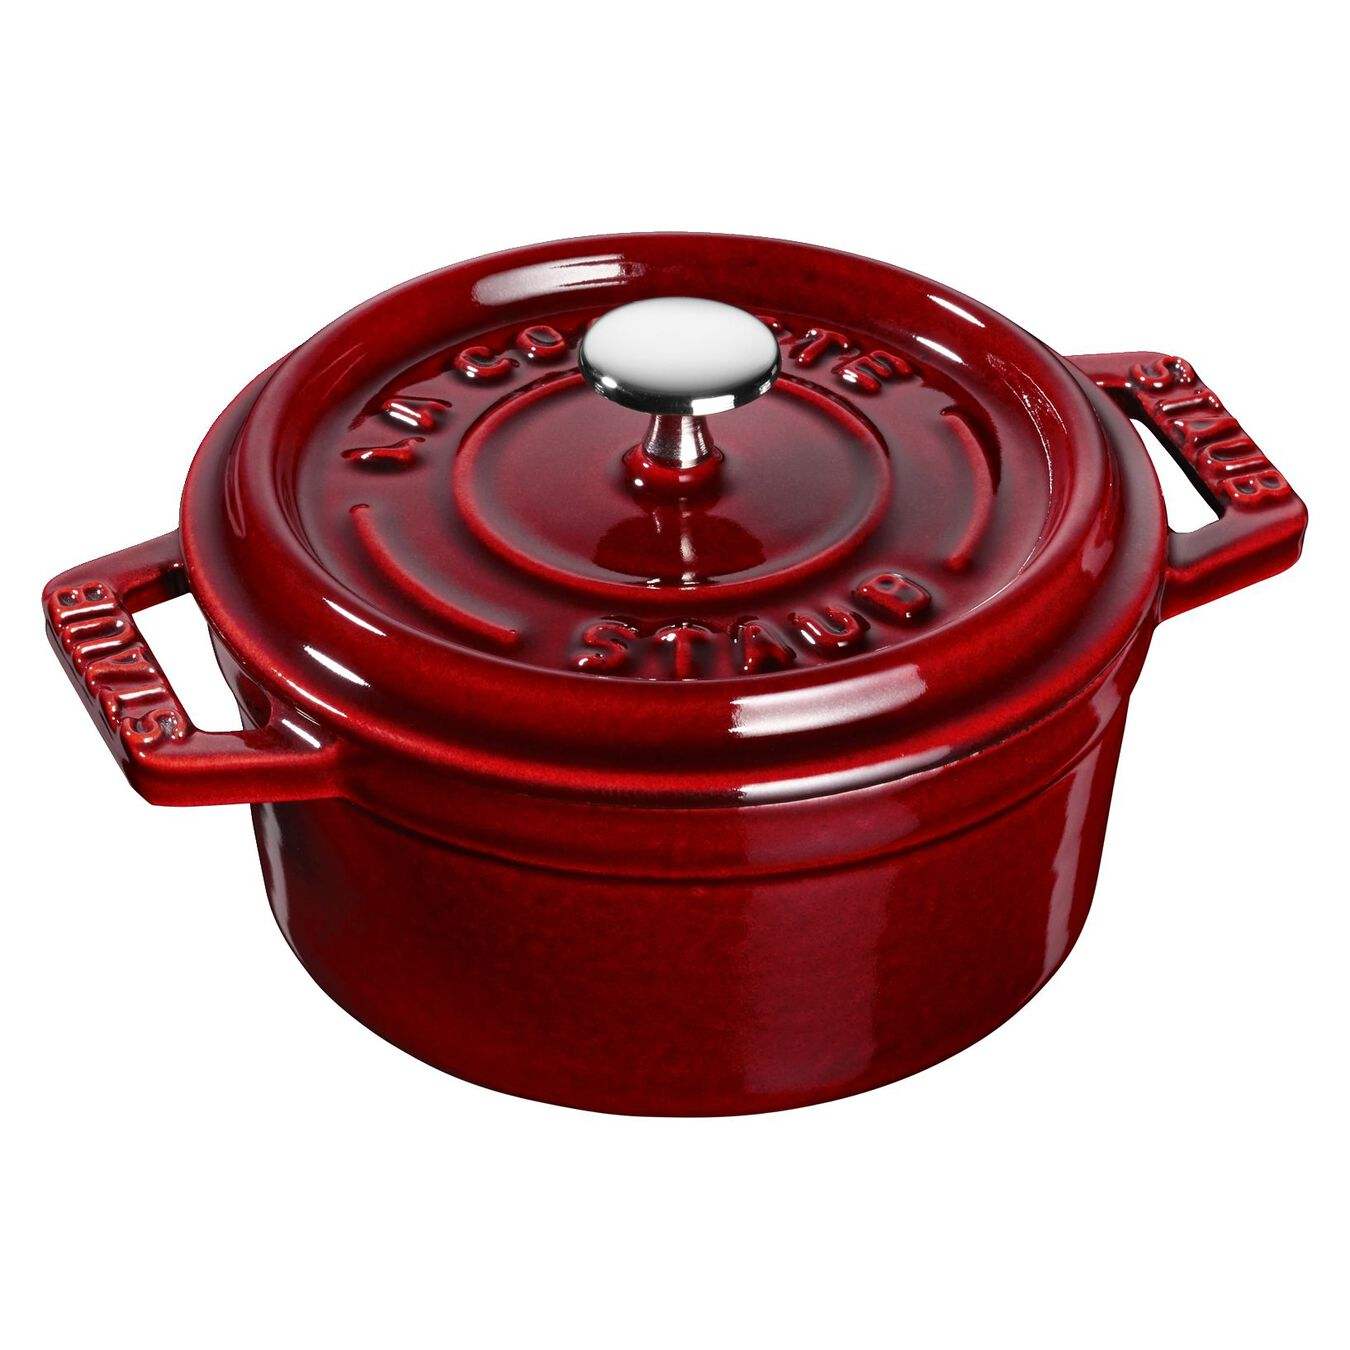 250 ml Cast iron round Mini Cocotte, Grenadine-Red,,large 2